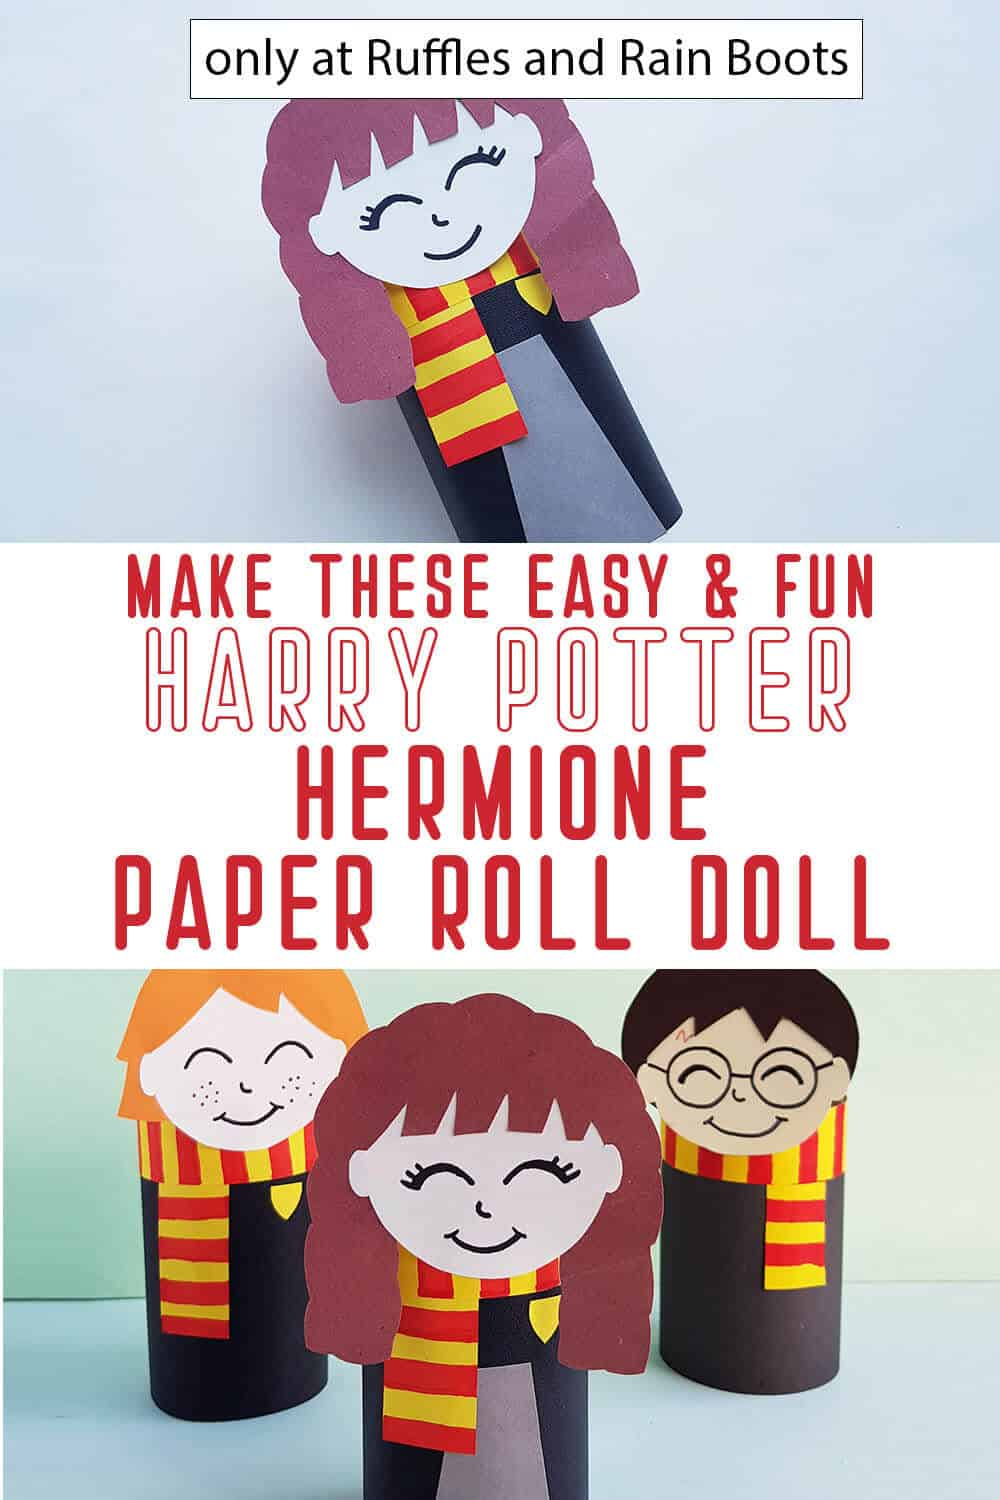 photo collage of harry potter book hermione paper doll from a paper roll with text which reads make these easy & fun harry potter hermione paper roll doll